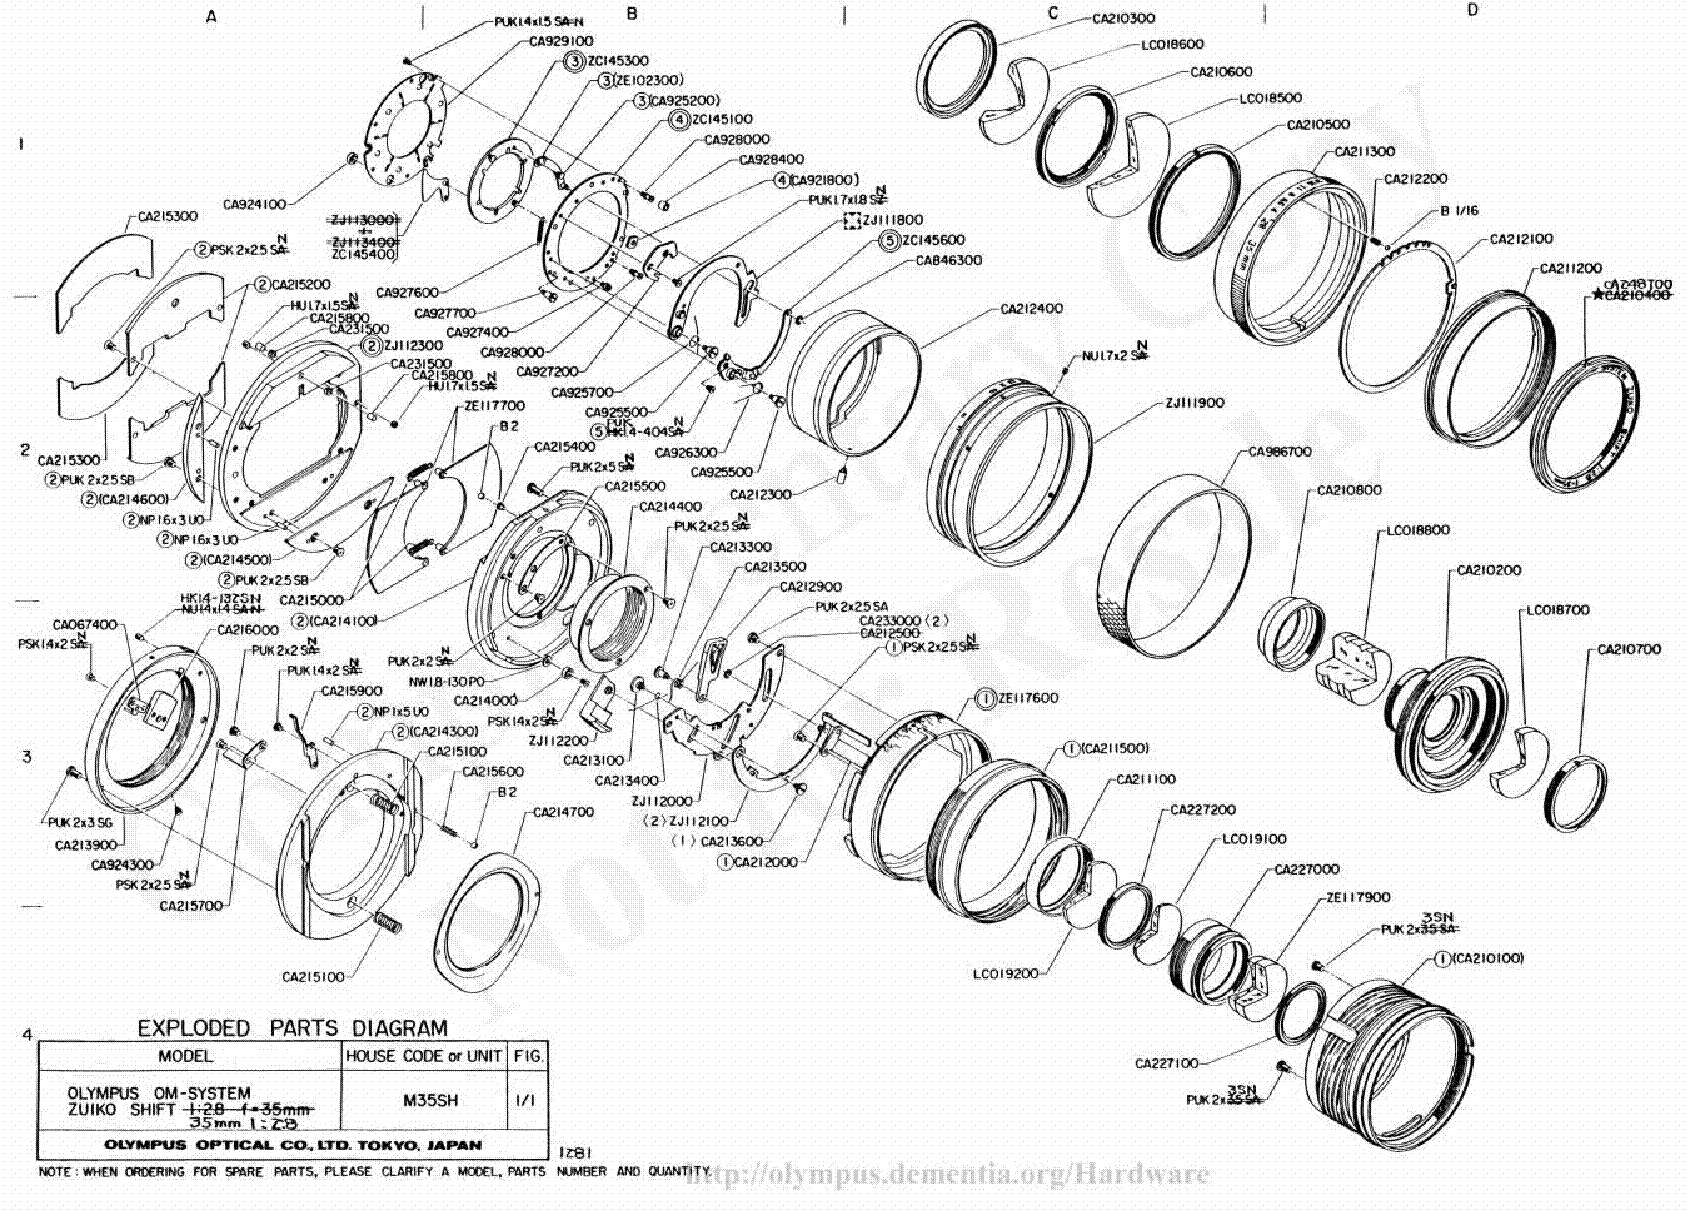 Olympus 35mm F2 8 Shift Exploded Parts Diagram Service Manual Download Schematics Eeprom